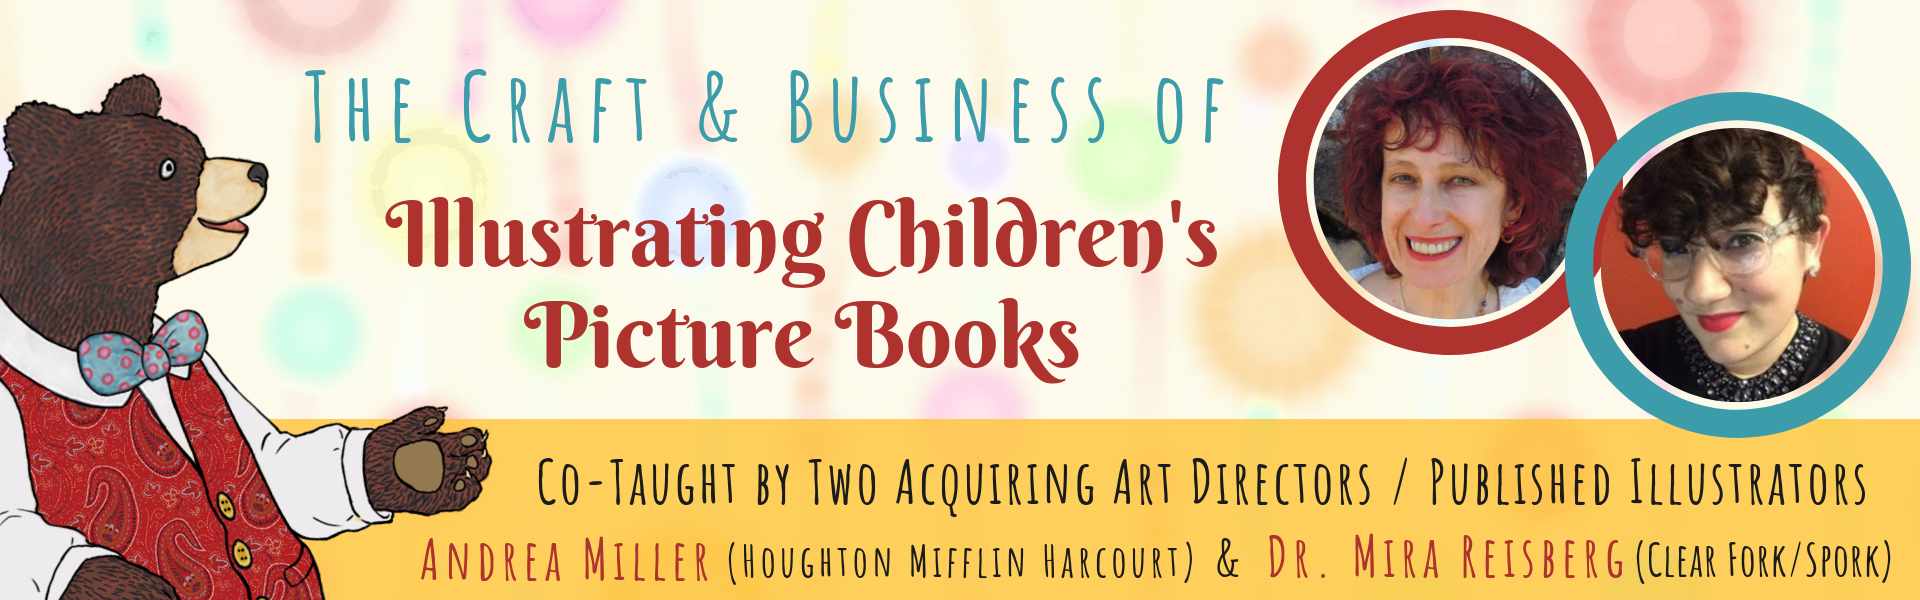 The Craft & Business of Writing Children's Picture Books with Andrea Miller and Mira Reisberg at the Children's Book Academy